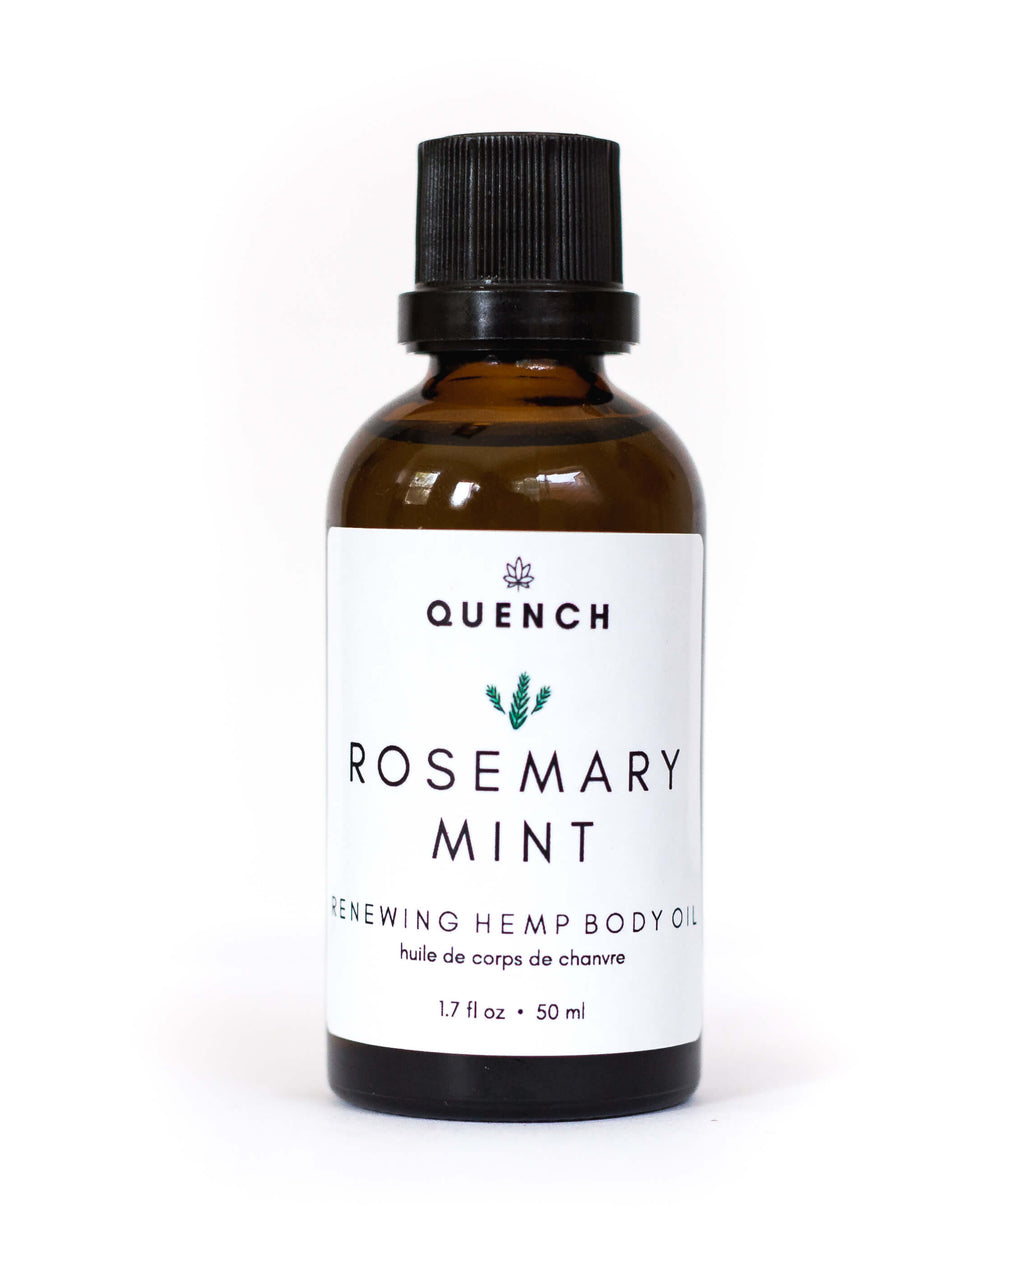 ROSEMARY MINT HEMP BODY OIL